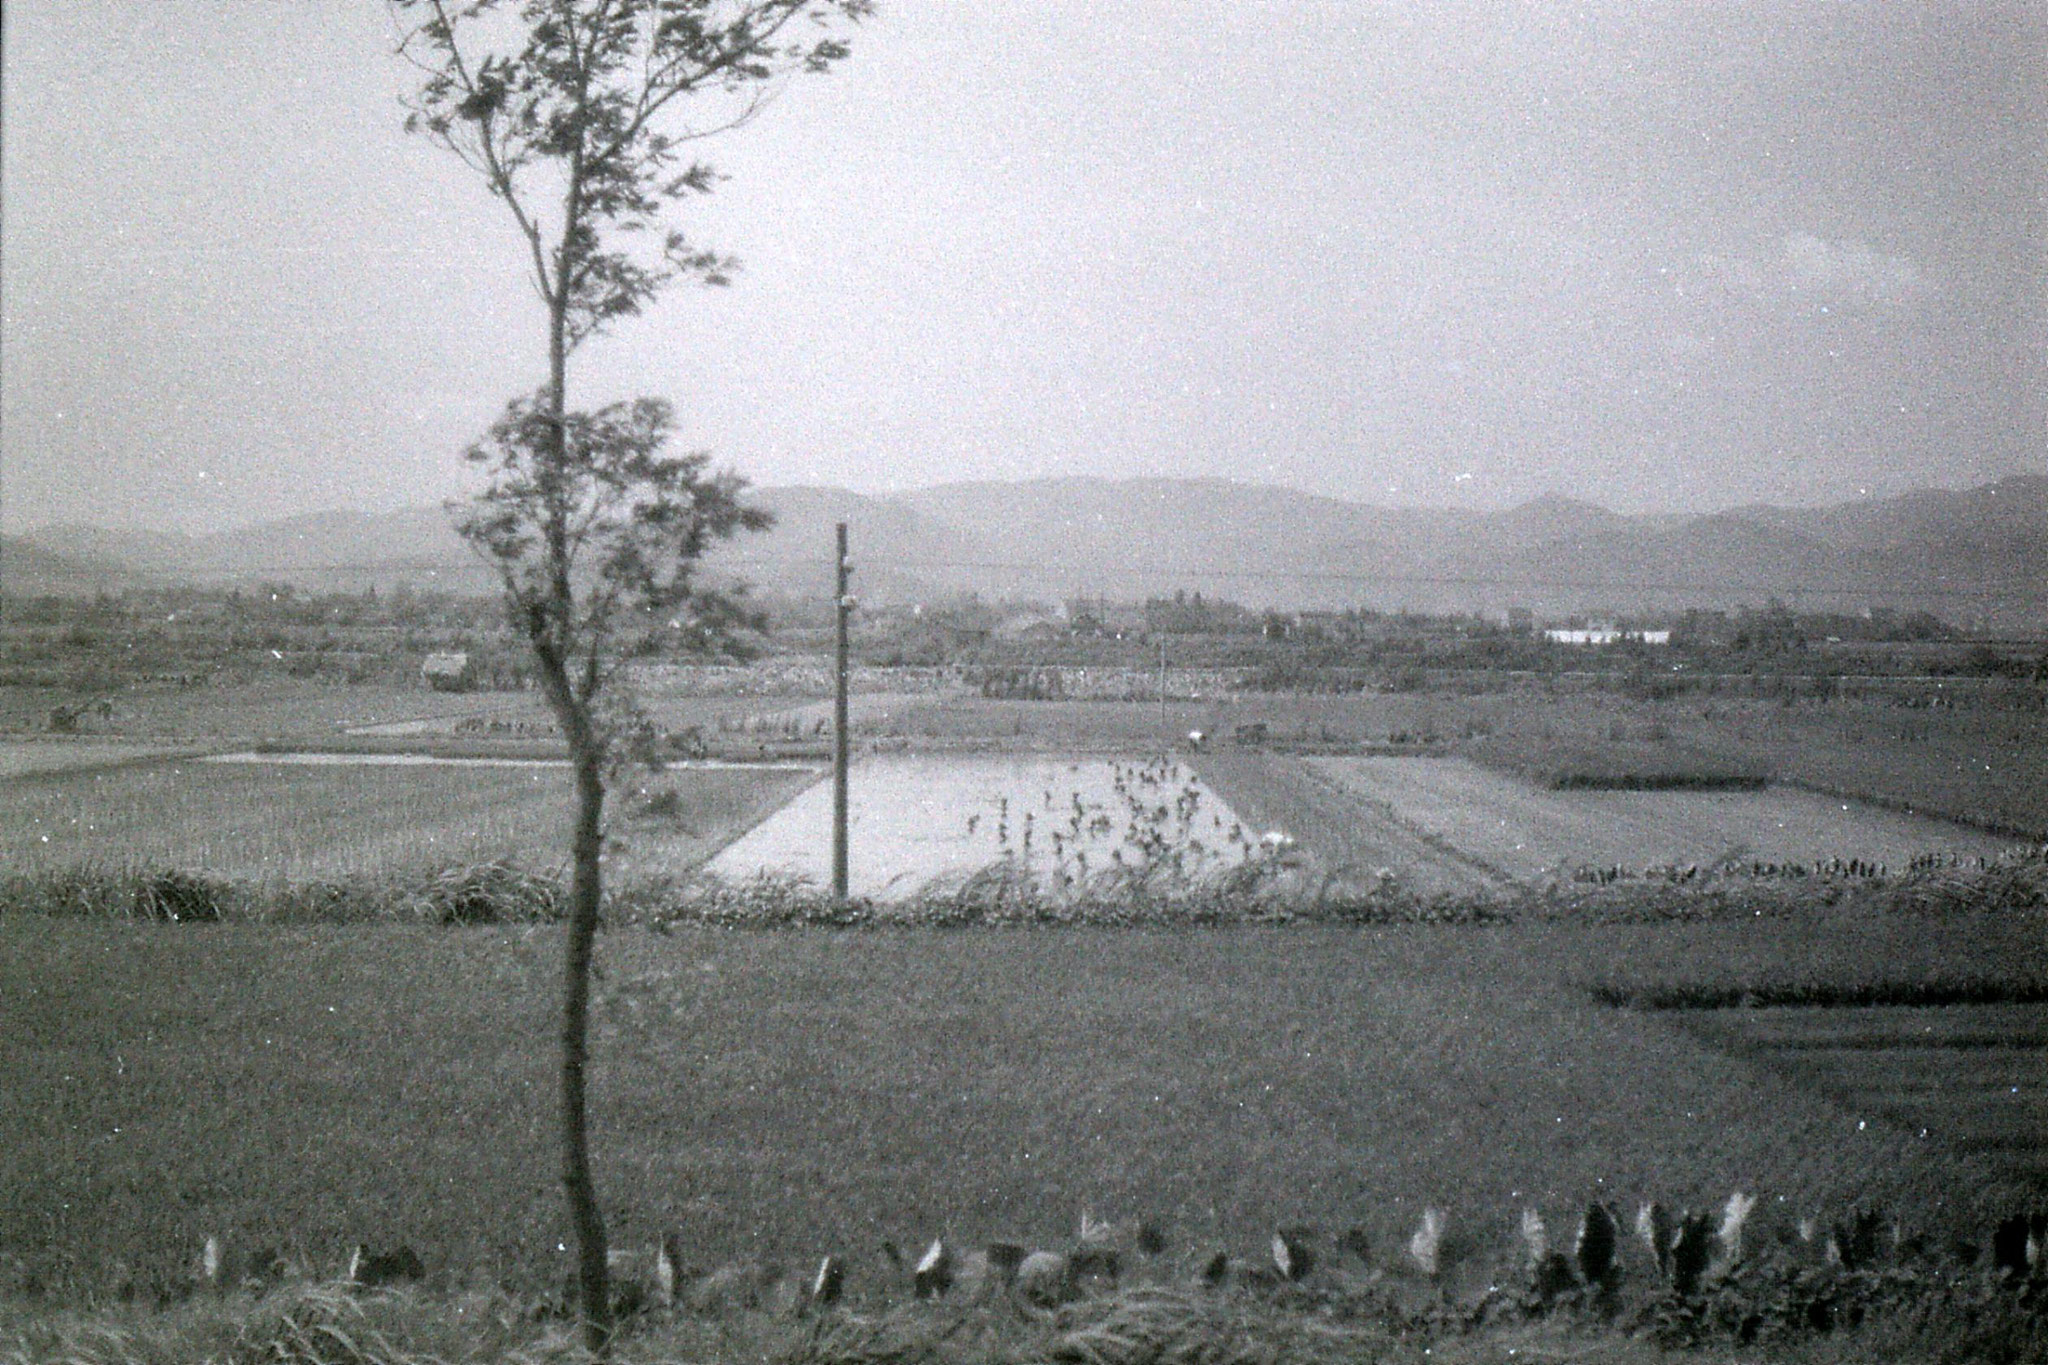 23/7/1989: 22: fields from train to Ningbo